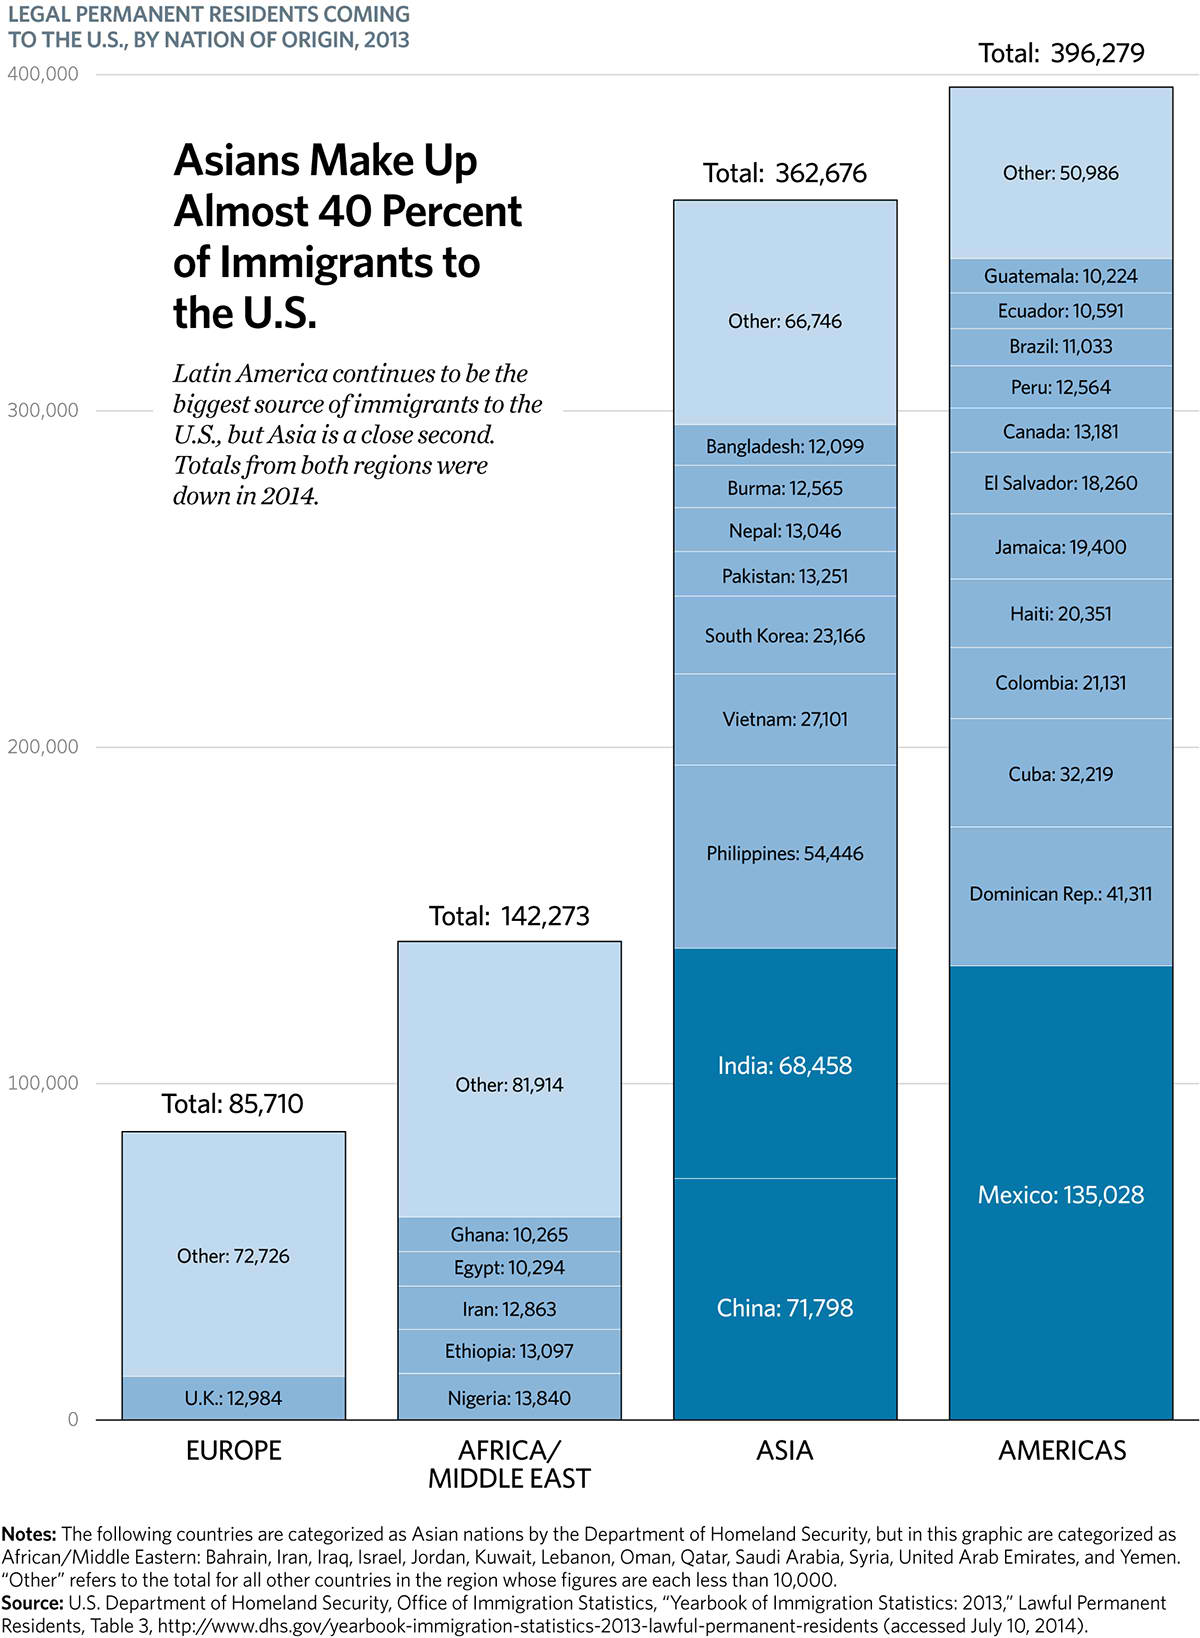 Asians Make Up Almost 40 Percent of Immigrants to the U.S.